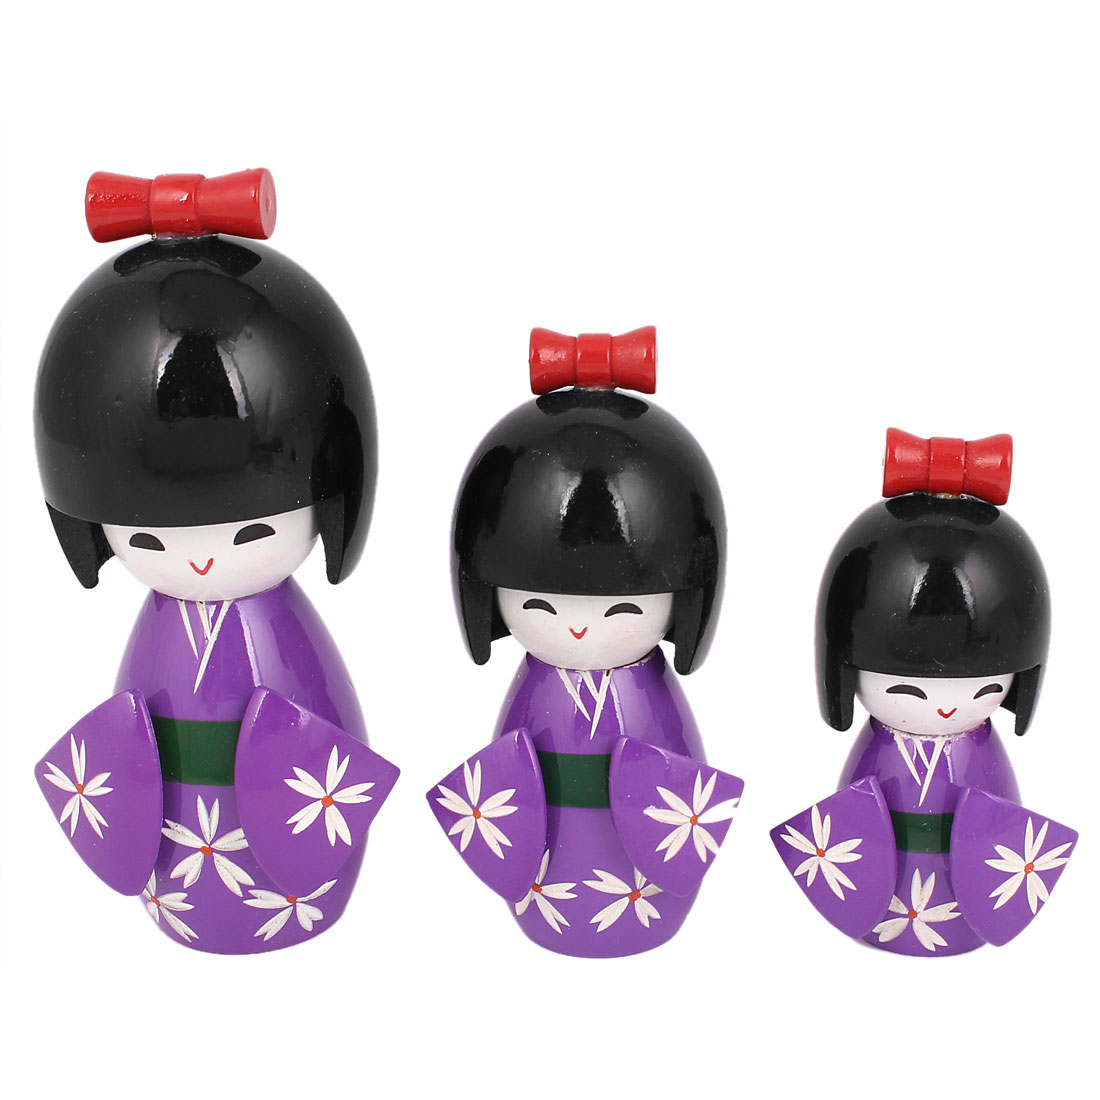 3Pcs Purple Black Wooden Japanese Doll Desk Decoration